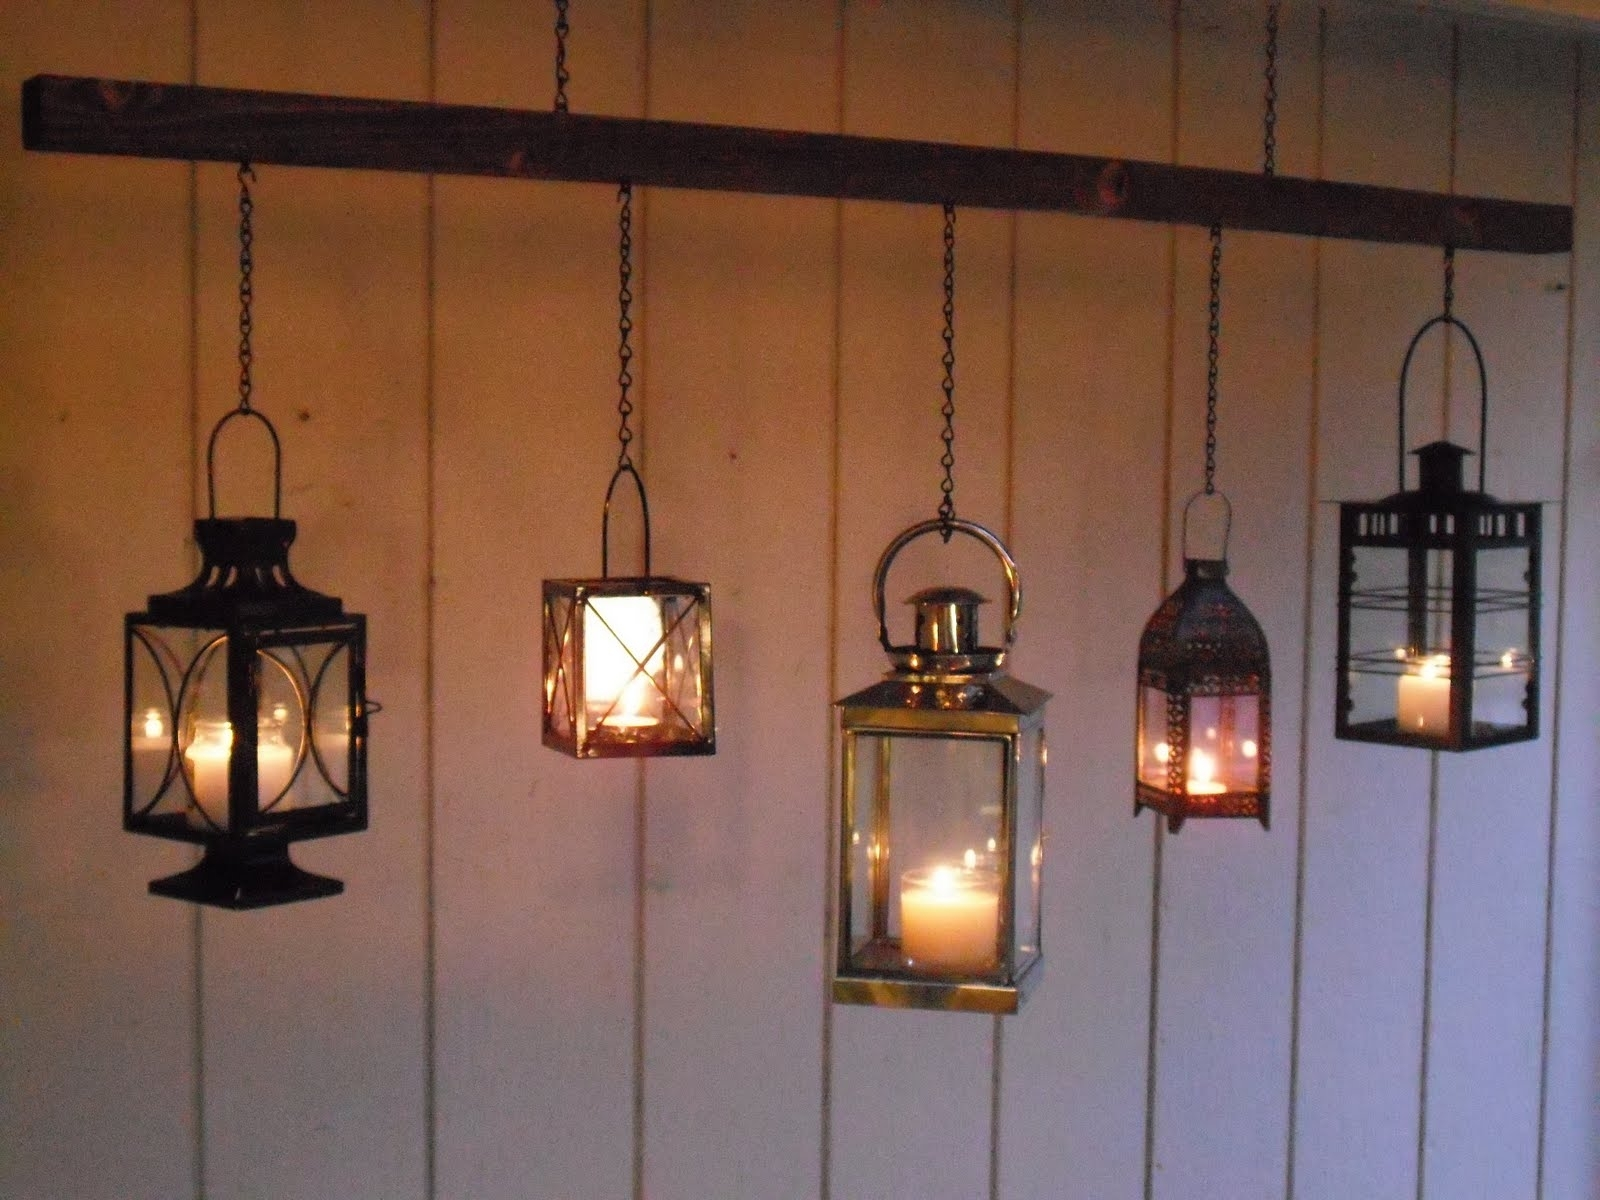 Wedding Decoration Hanging Candle Lanterns – Matt And Jentry Home Design Pertaining To Outdoor Hanging Lanterns With Candles (View 6 of 15)